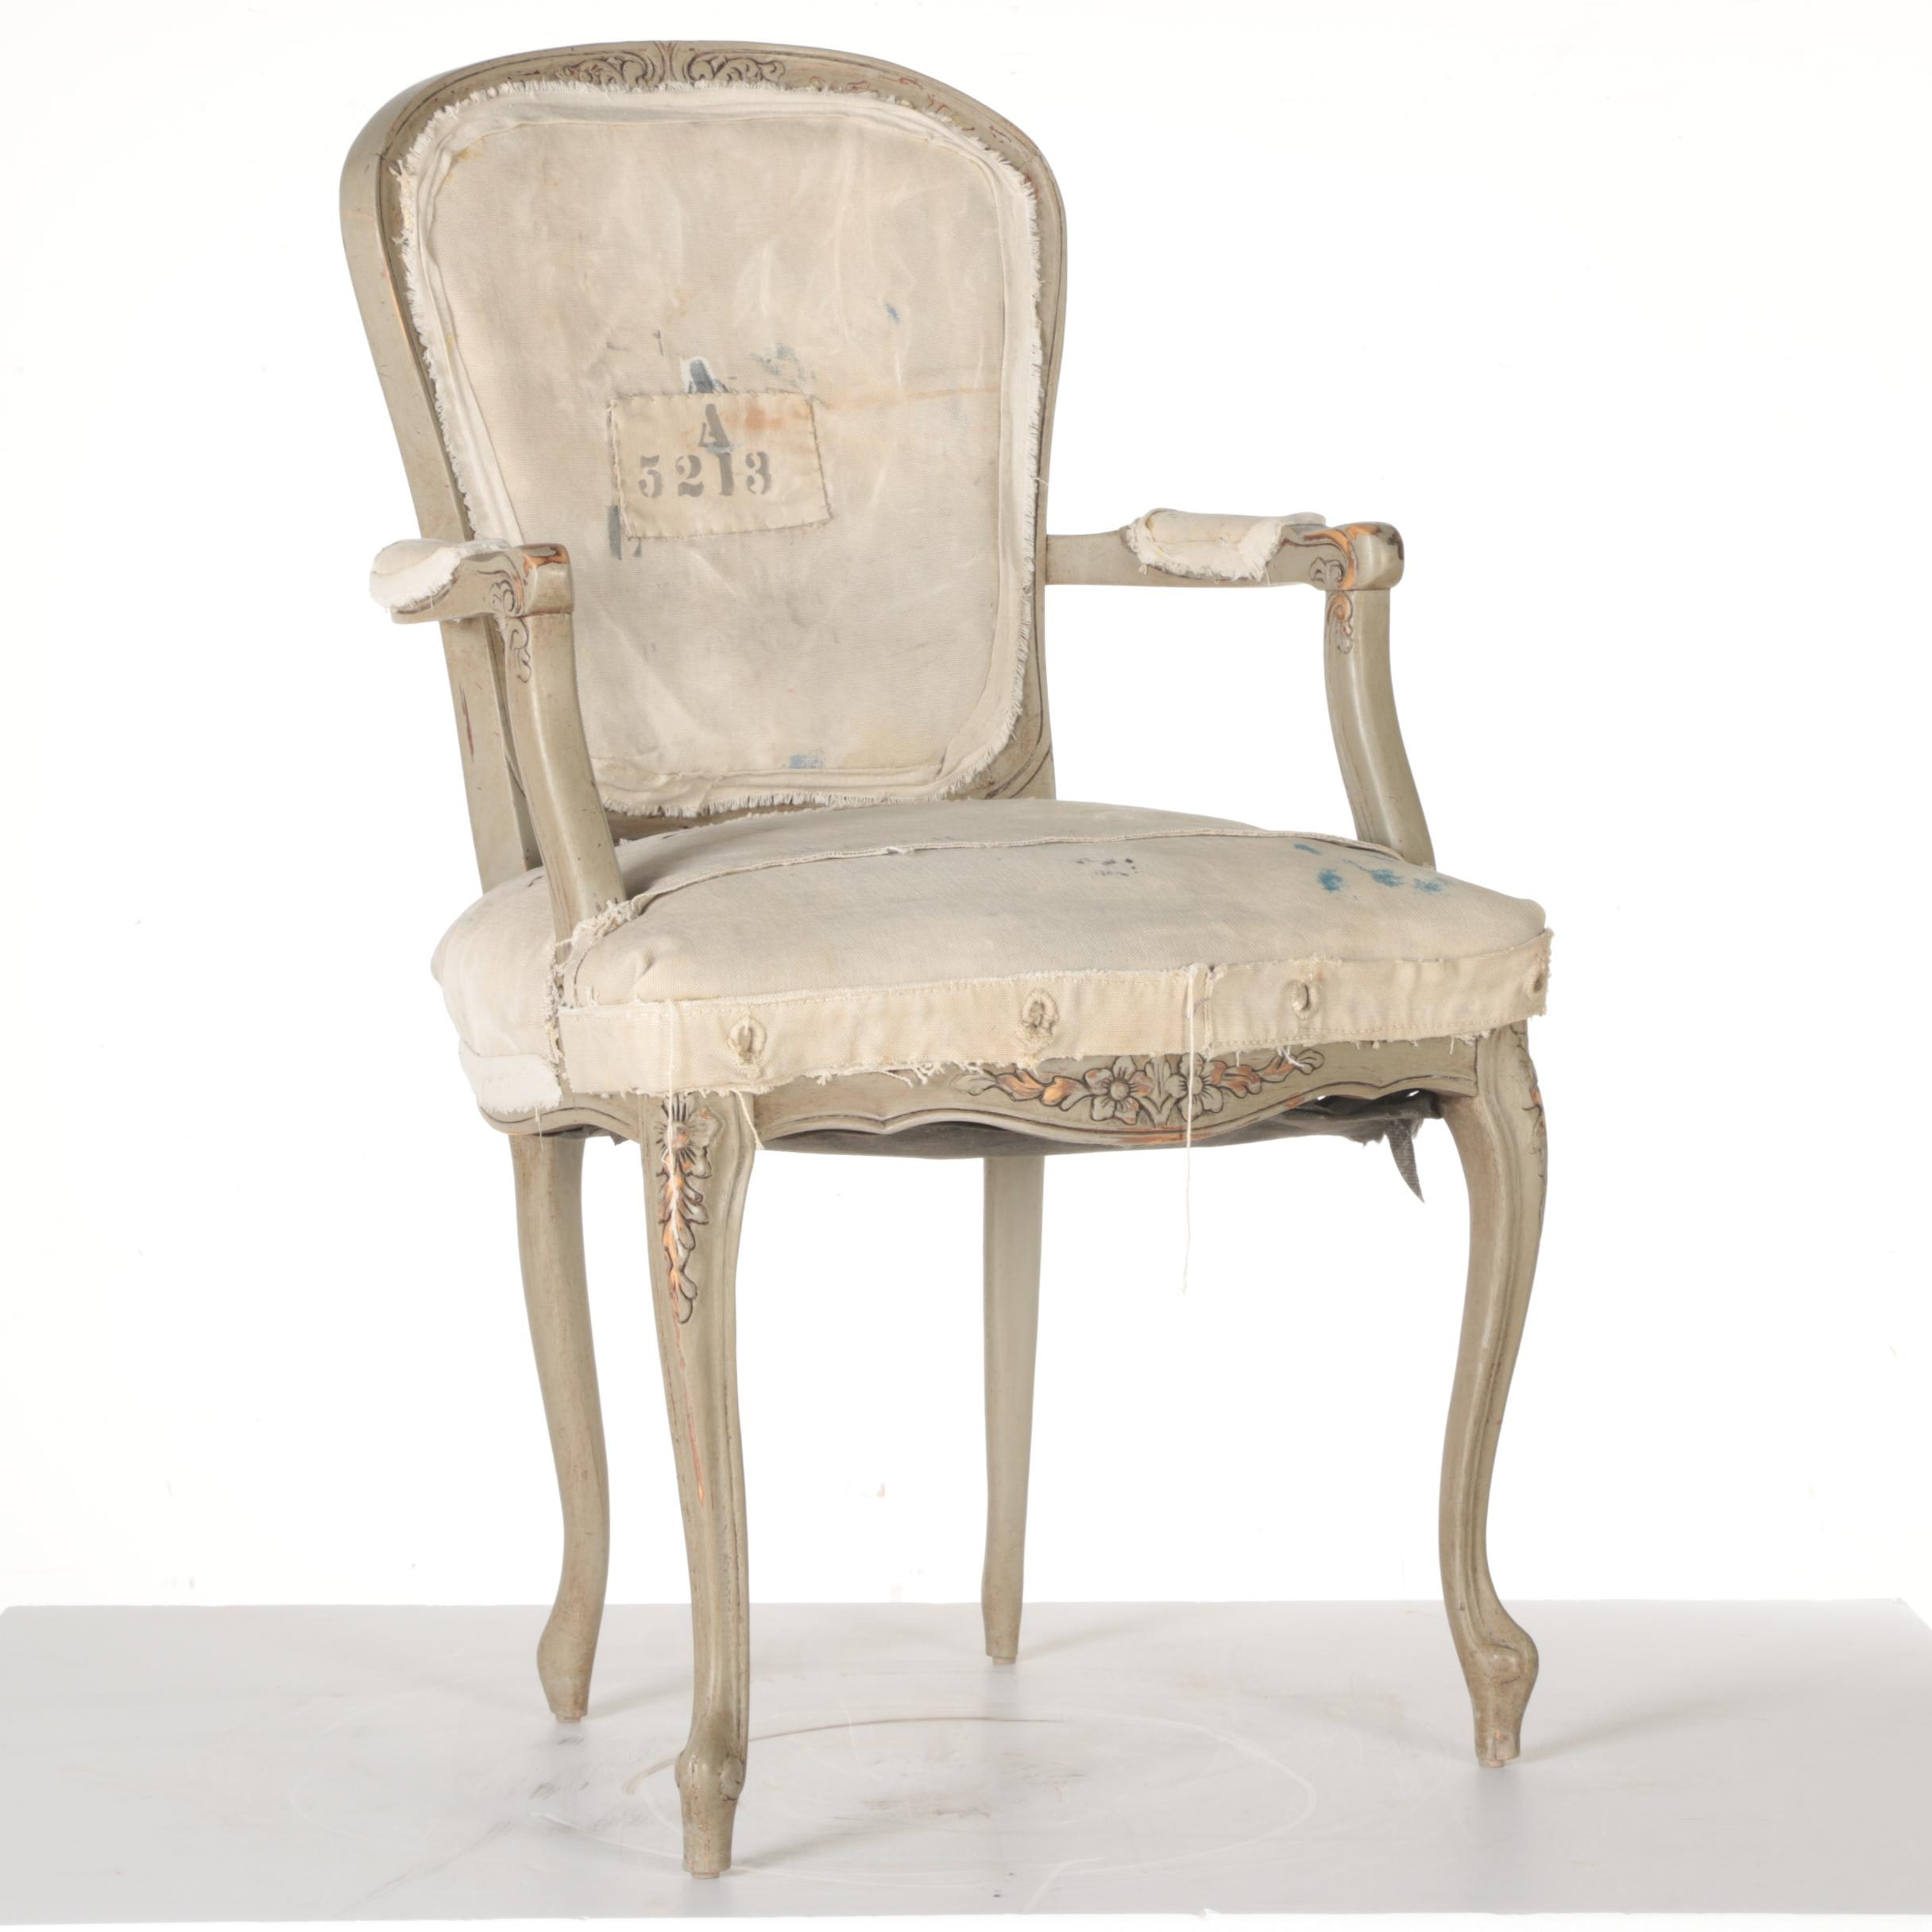 Louis XV Style Distressed Fauteuil with Fringed Back